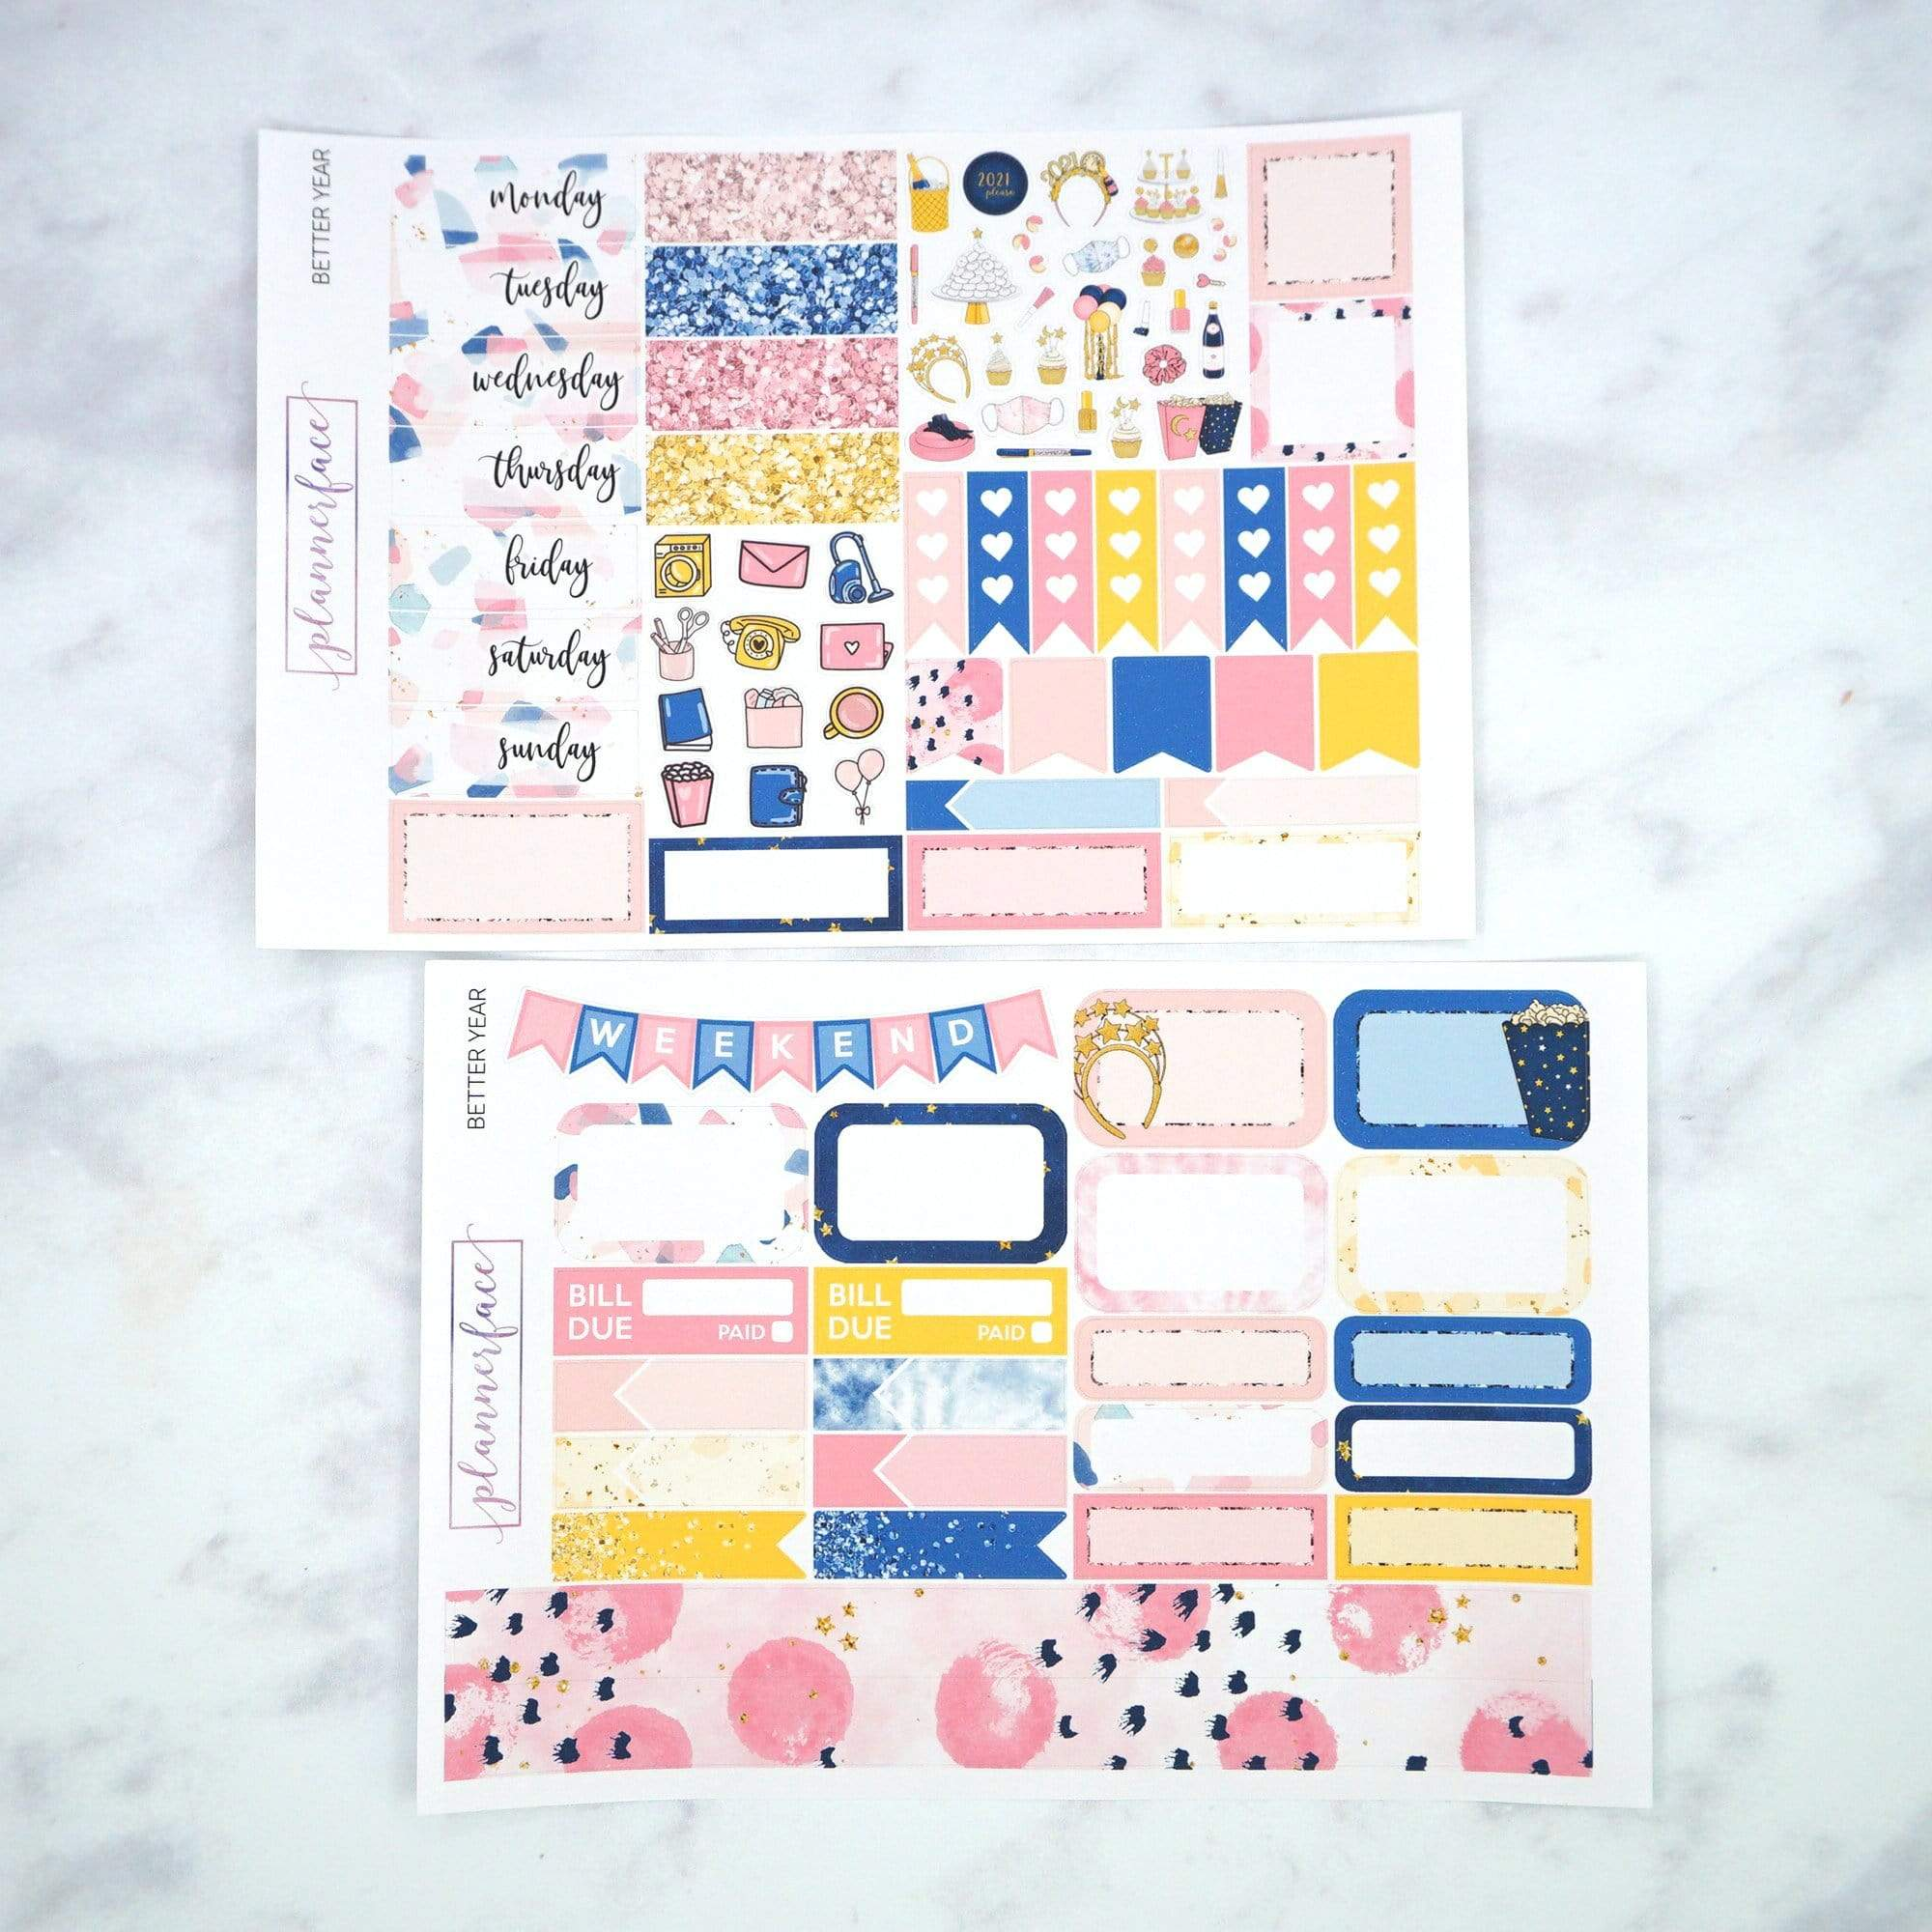 Plannerface Better Year Mini Kit Planner Stickers